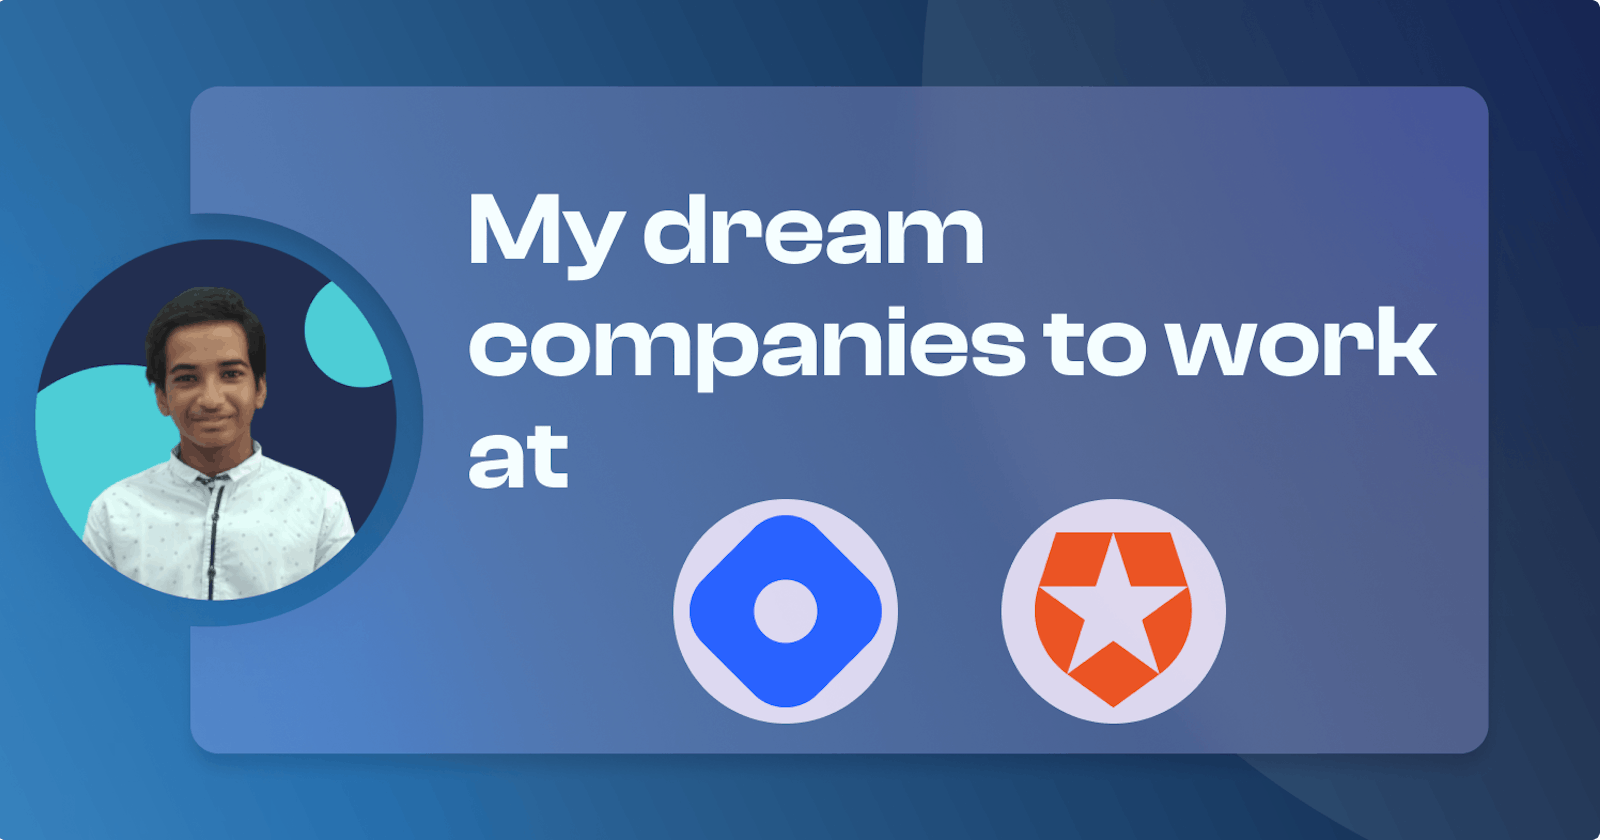 My dream companies to work at